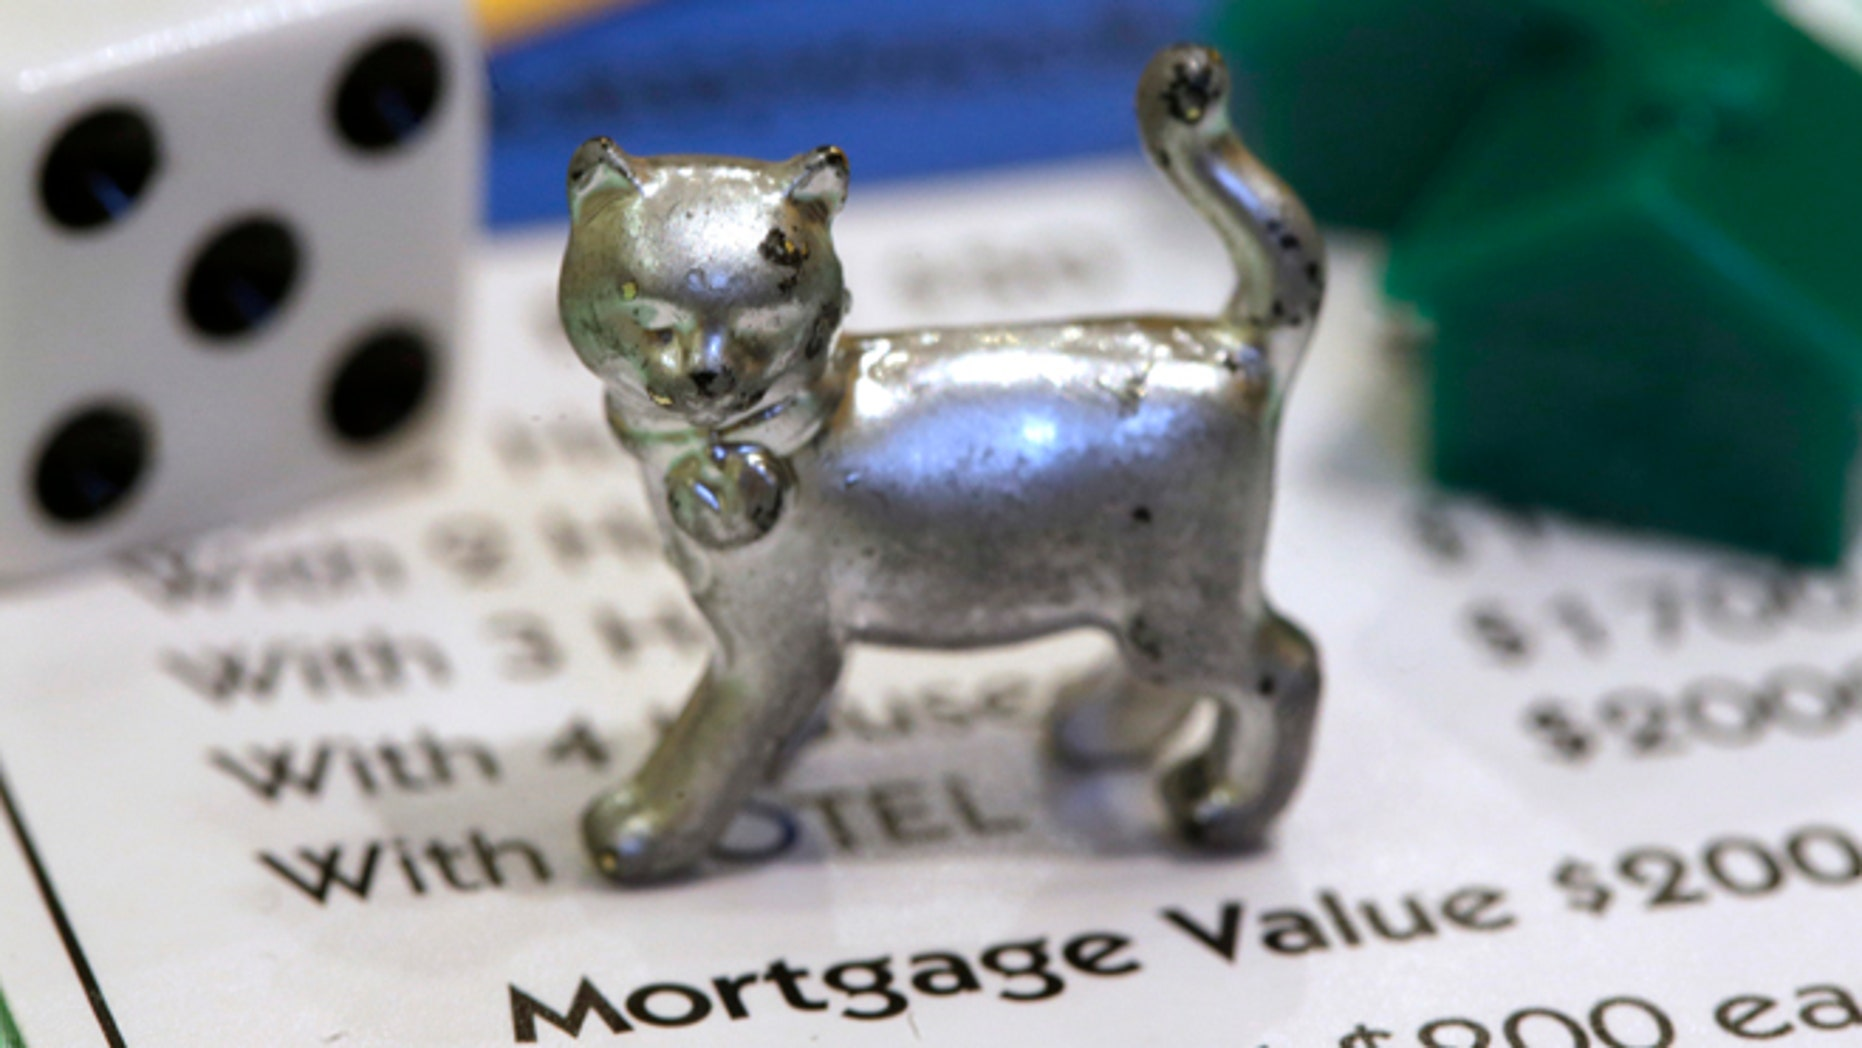 Feb. 5: The newest Monopoly token, a cat, rests on a Boardwalk deed next to a die and houses at Hasbro Inc. headquarters, in Pawtucket, R.I.